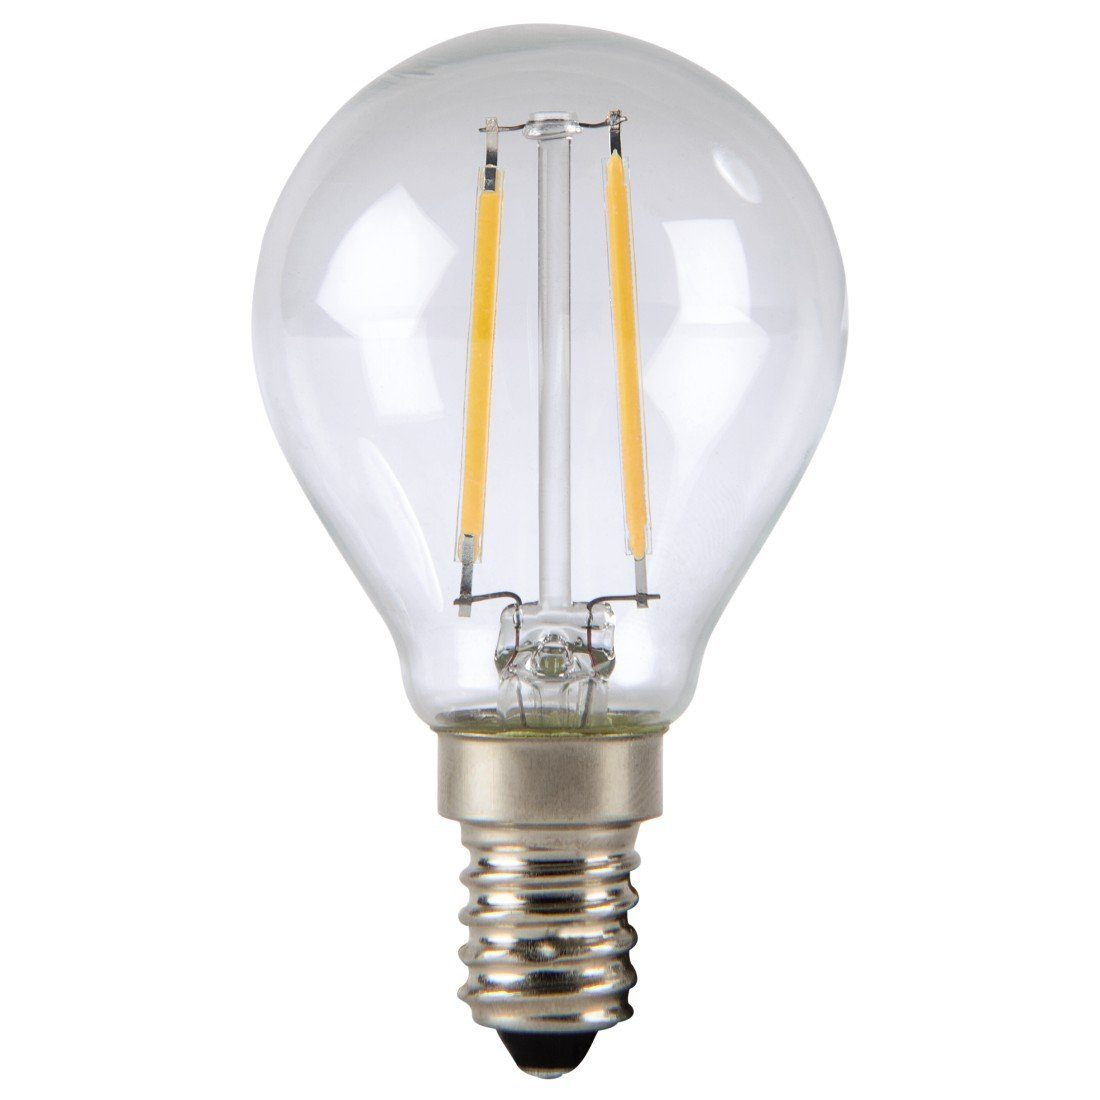 Xavax LED-Lampe, 2,4W, Tropfenform, Filament, E14, Warmweiß